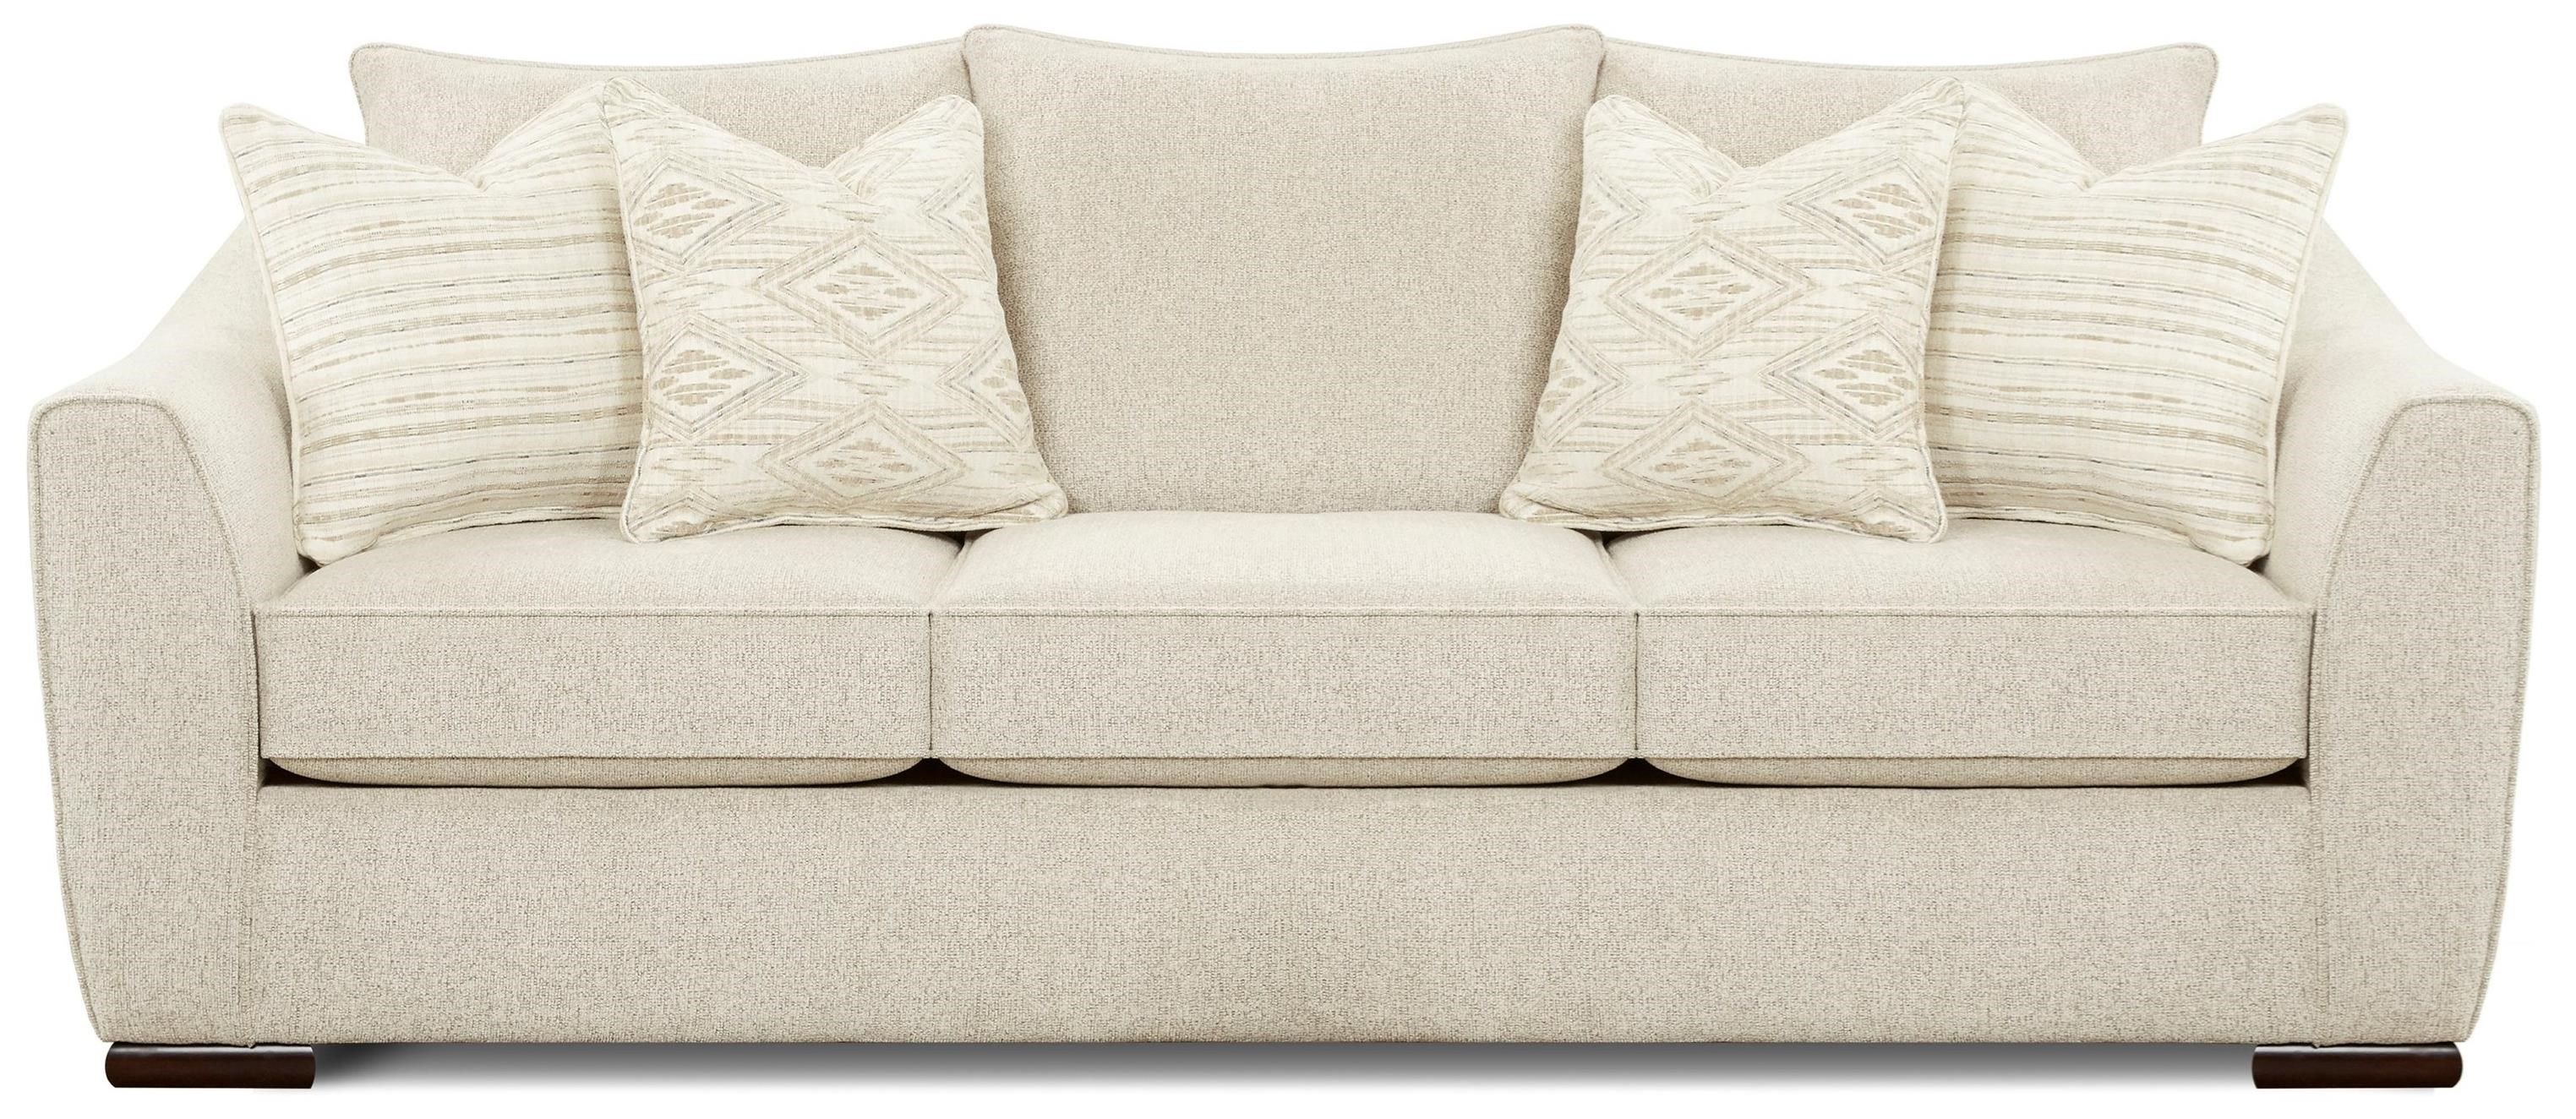 9770 Sofa by Fusion Furniture at Furniture Superstore - Rochester, MN